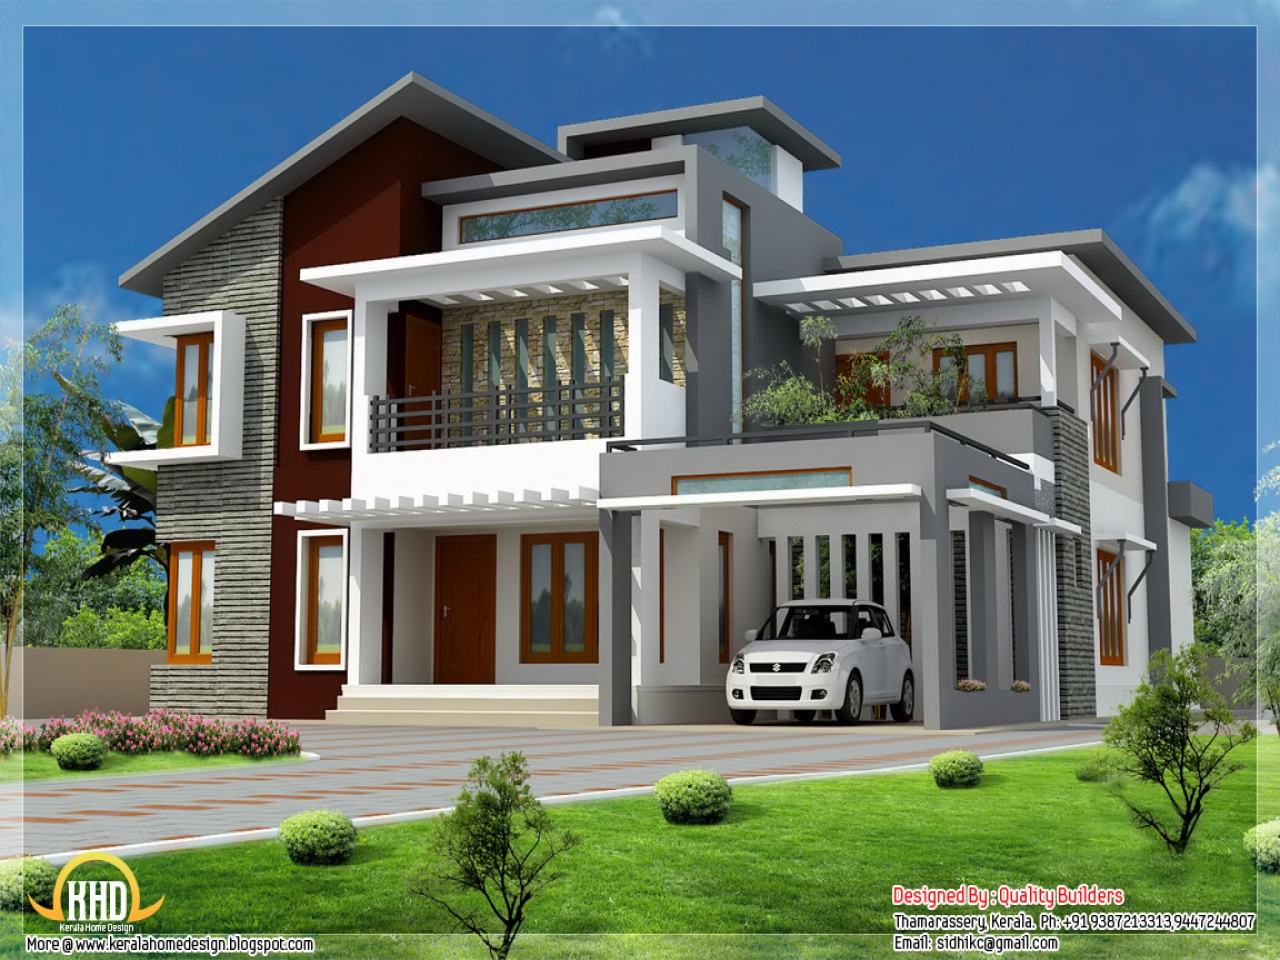 modern style house design modern tropical house design modern home style